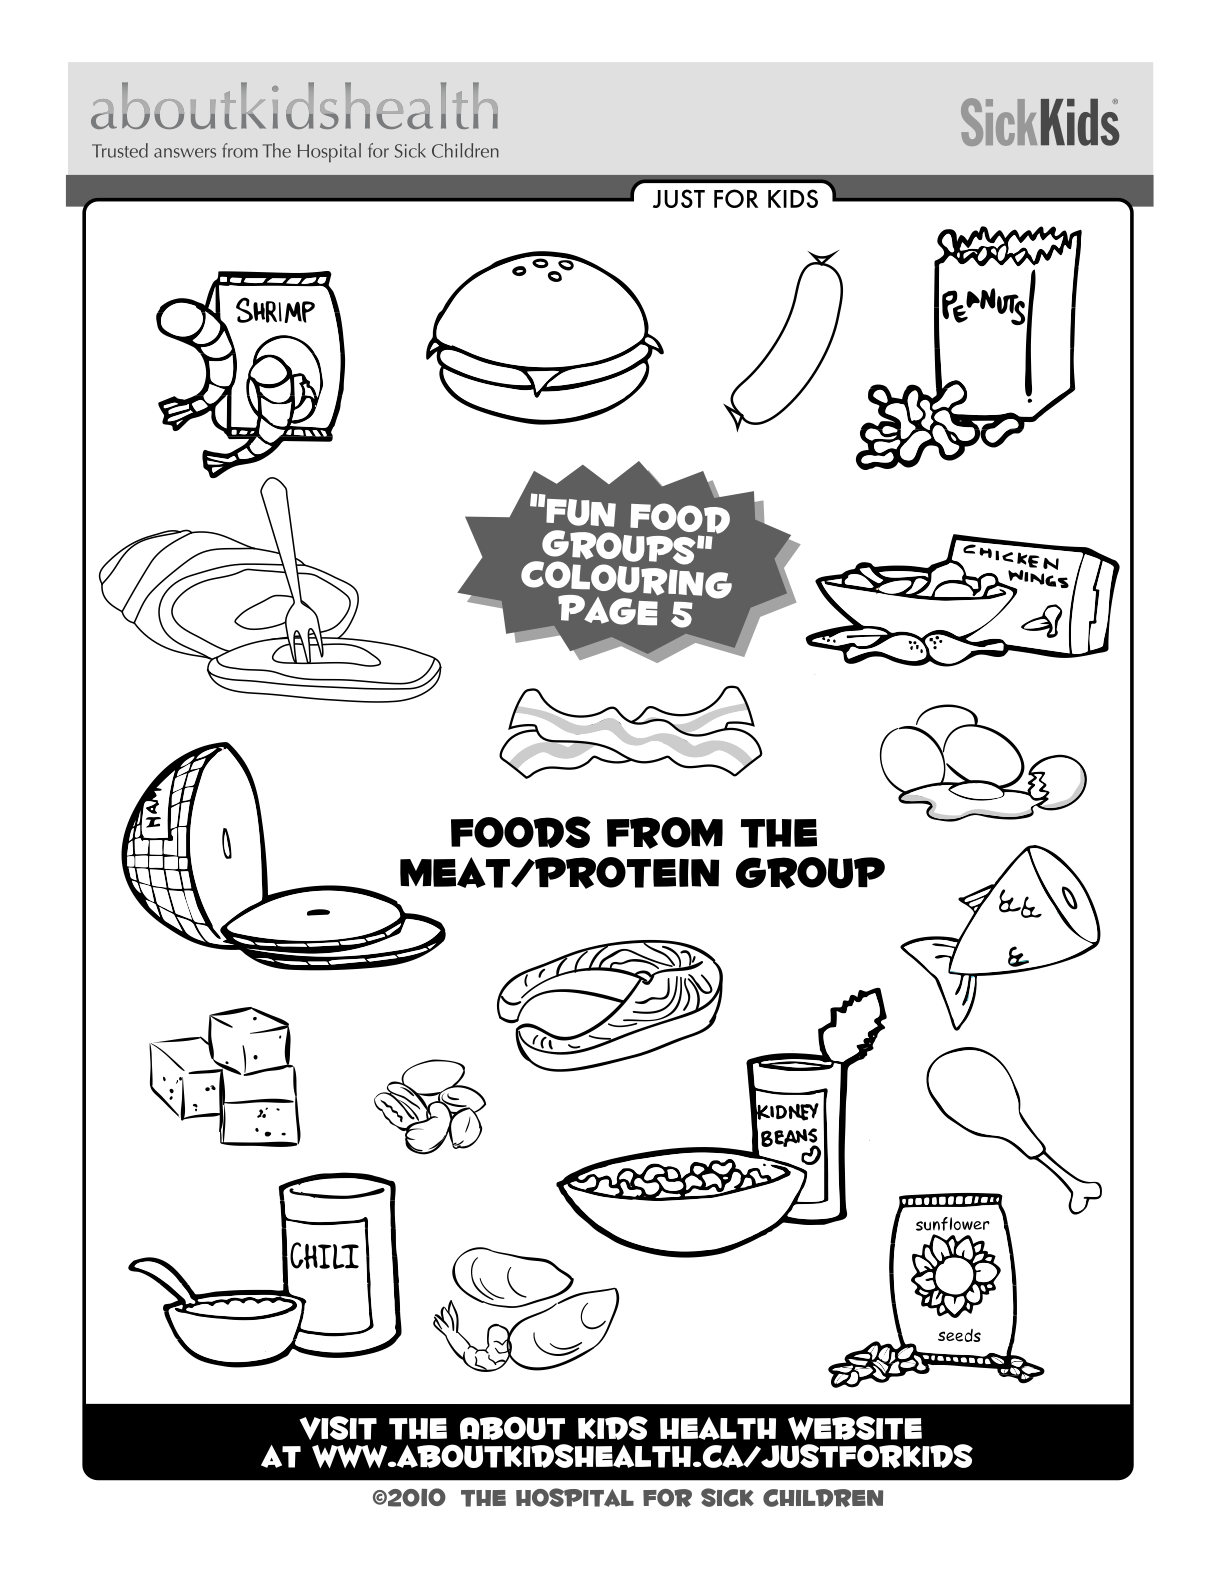 5 food groups coloring pages activity page to keep the kids busy saladswap 5 pages groups food coloring